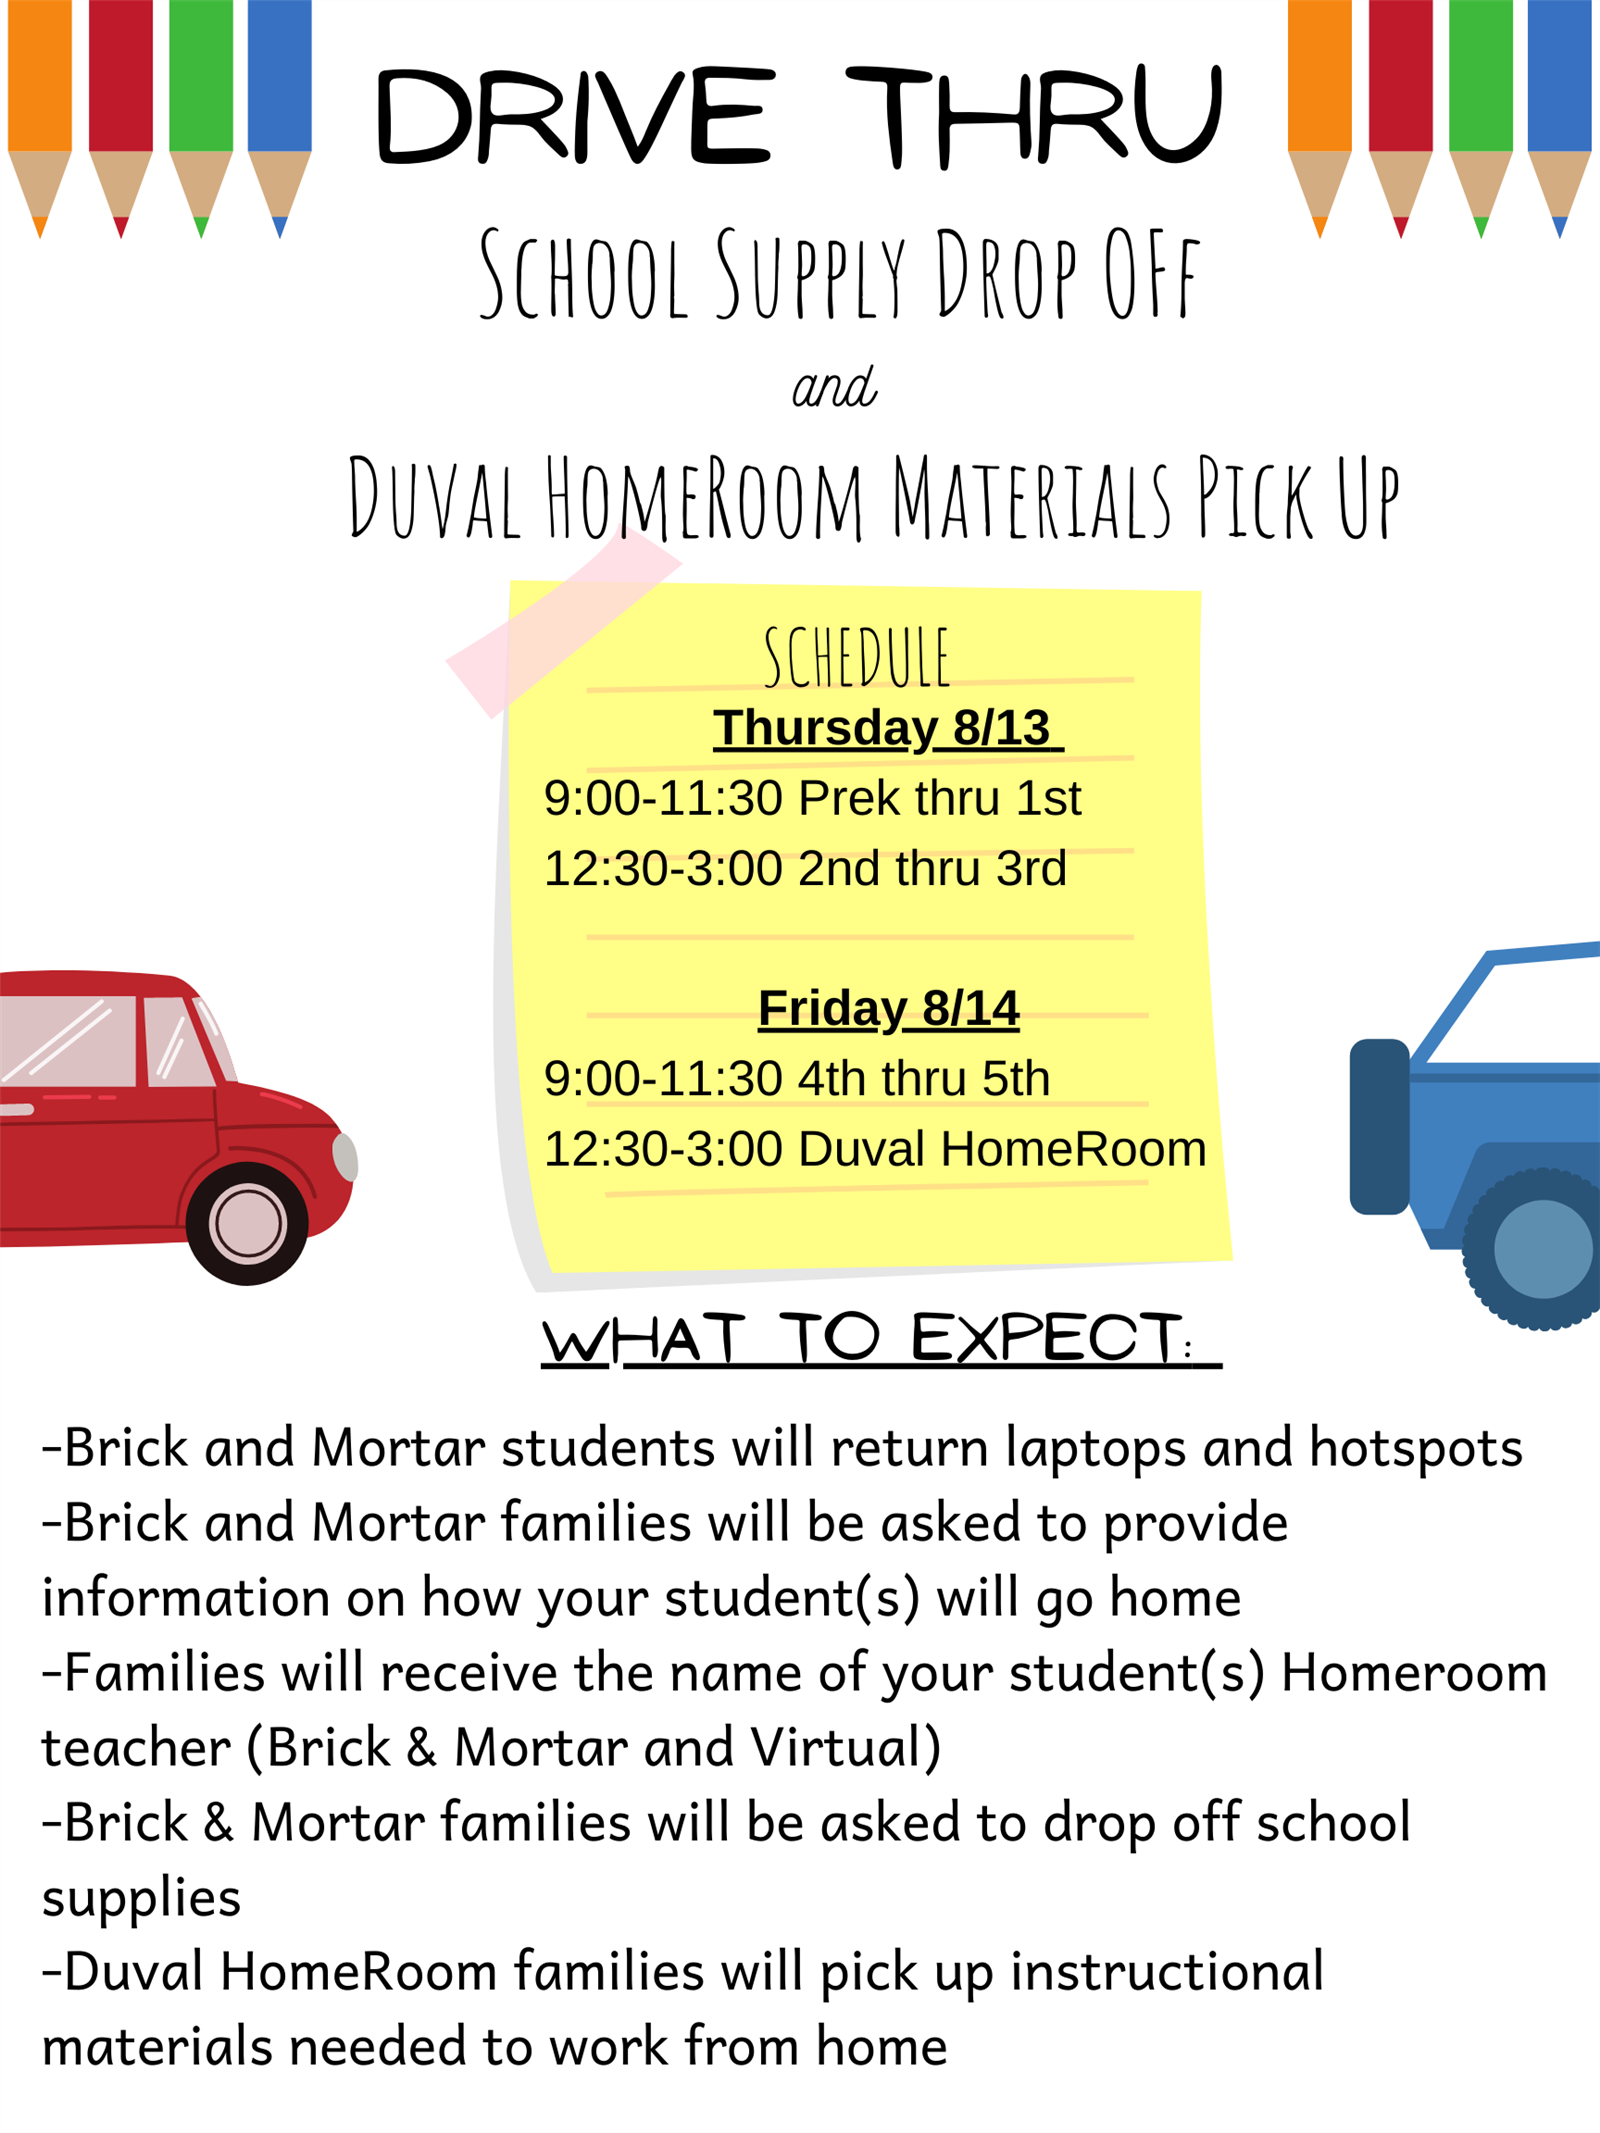 Drive Thru School Supply Drop Off and Duval HomeRoom Materials Pick Up Schedule